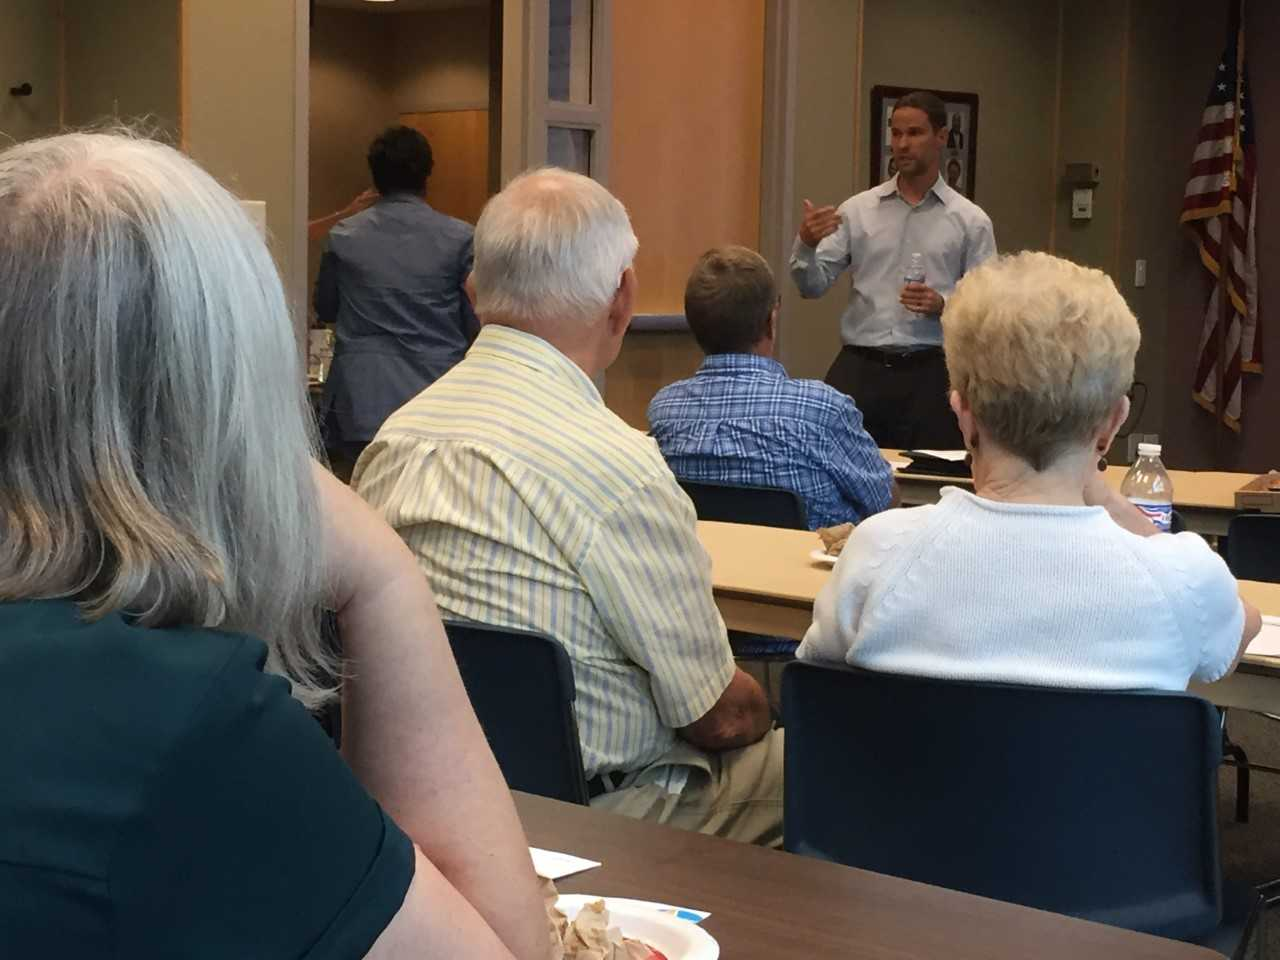 Chase Haller of the Neighborhood Christian Legal Clinic talks about tenant rights during the free Call A Lawyer program Sept. 19 at the Haughville branch of the Indianapolis Public Library.